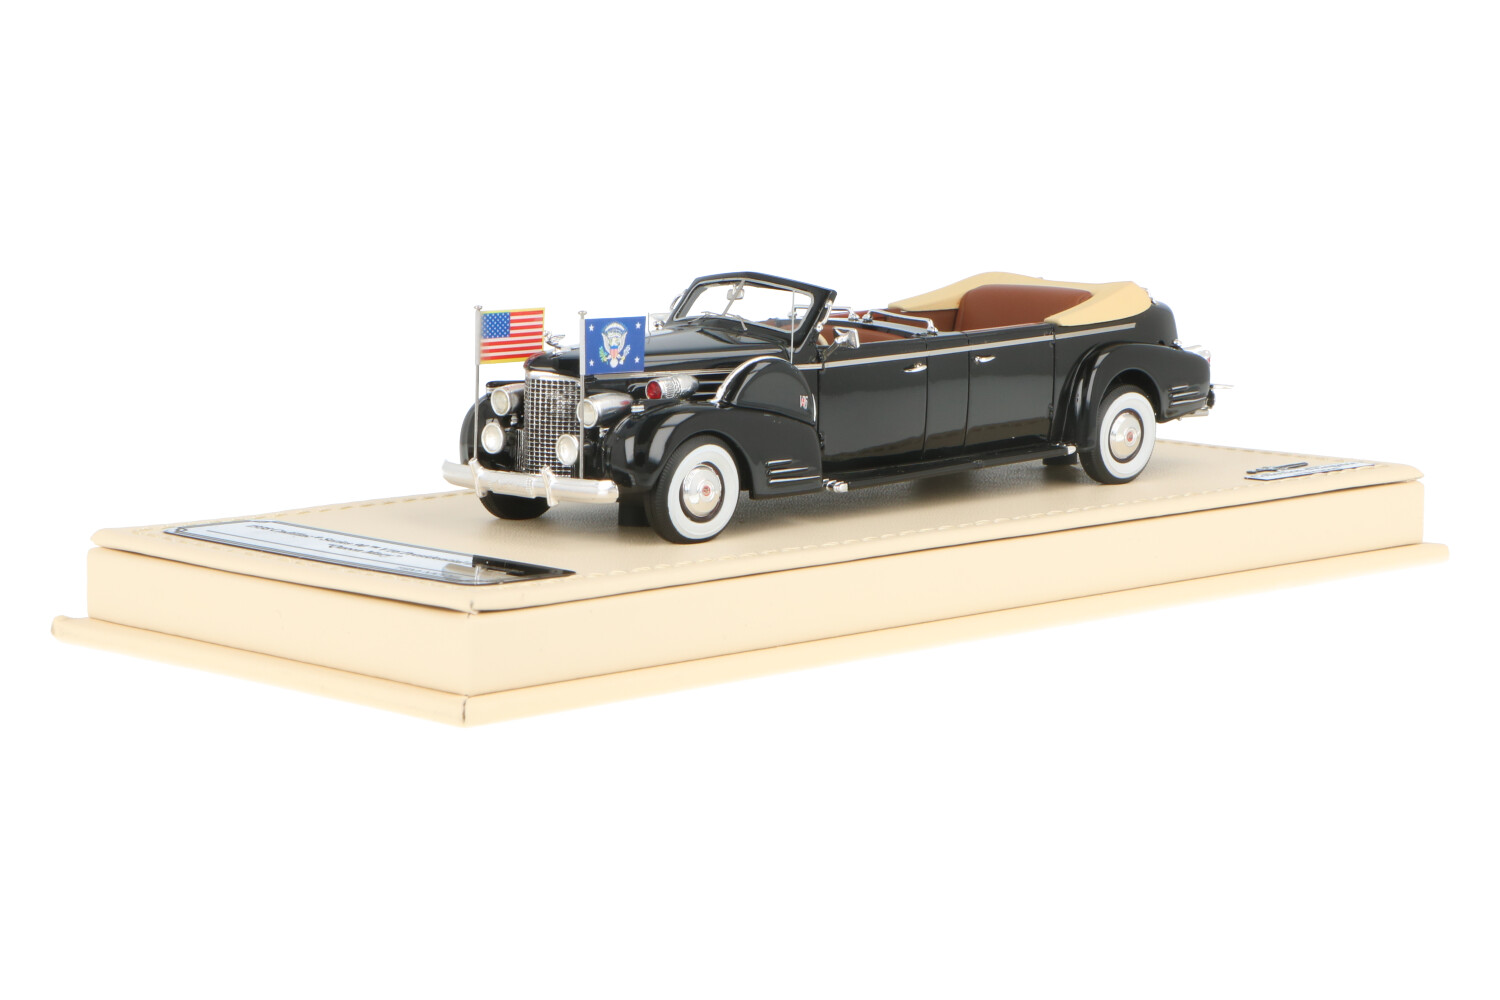 Cadillac Series 90 V16 Presidentiale Limousine - Queen Mary - Base in Pelle - Modelauto schaal 1:43